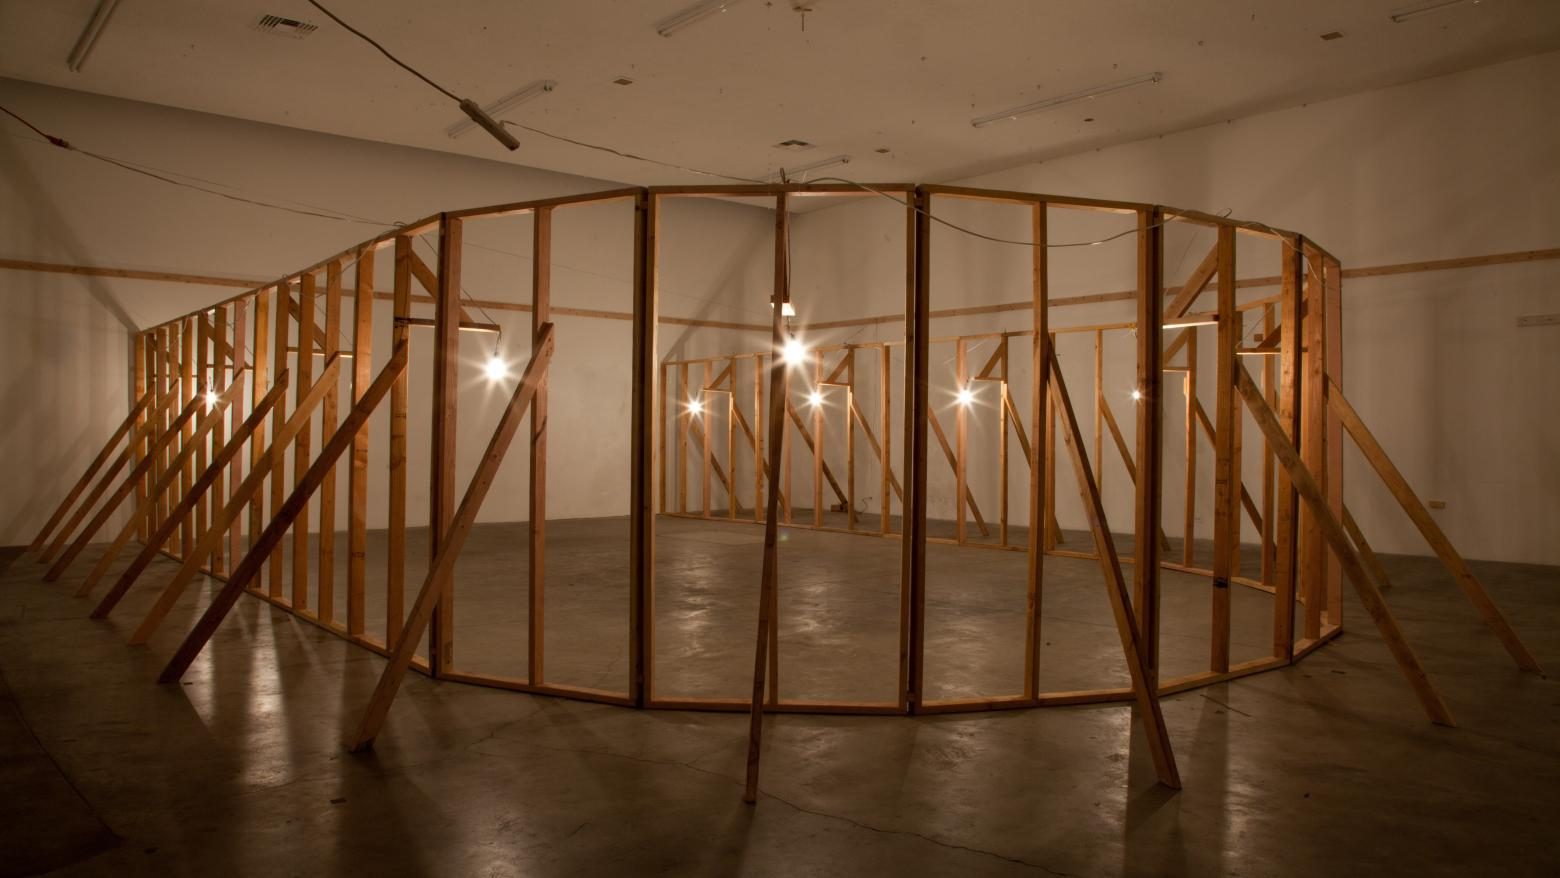 Lauren Davis Fisher, New Structures, New Orientations, 2013.